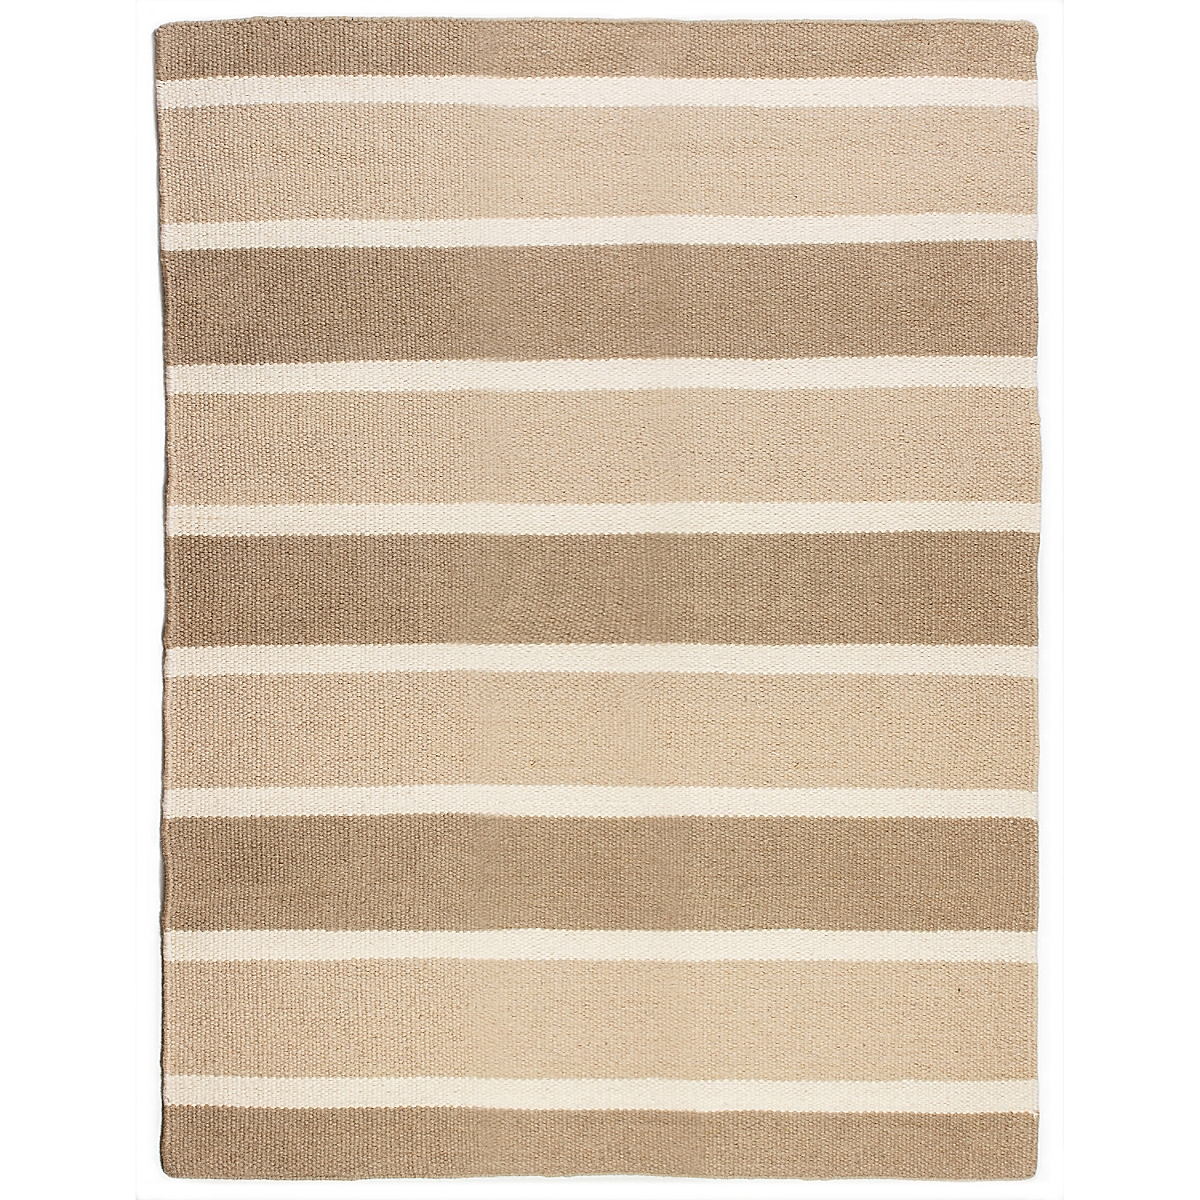 Sandy Hook Wool Berber Striped Rug